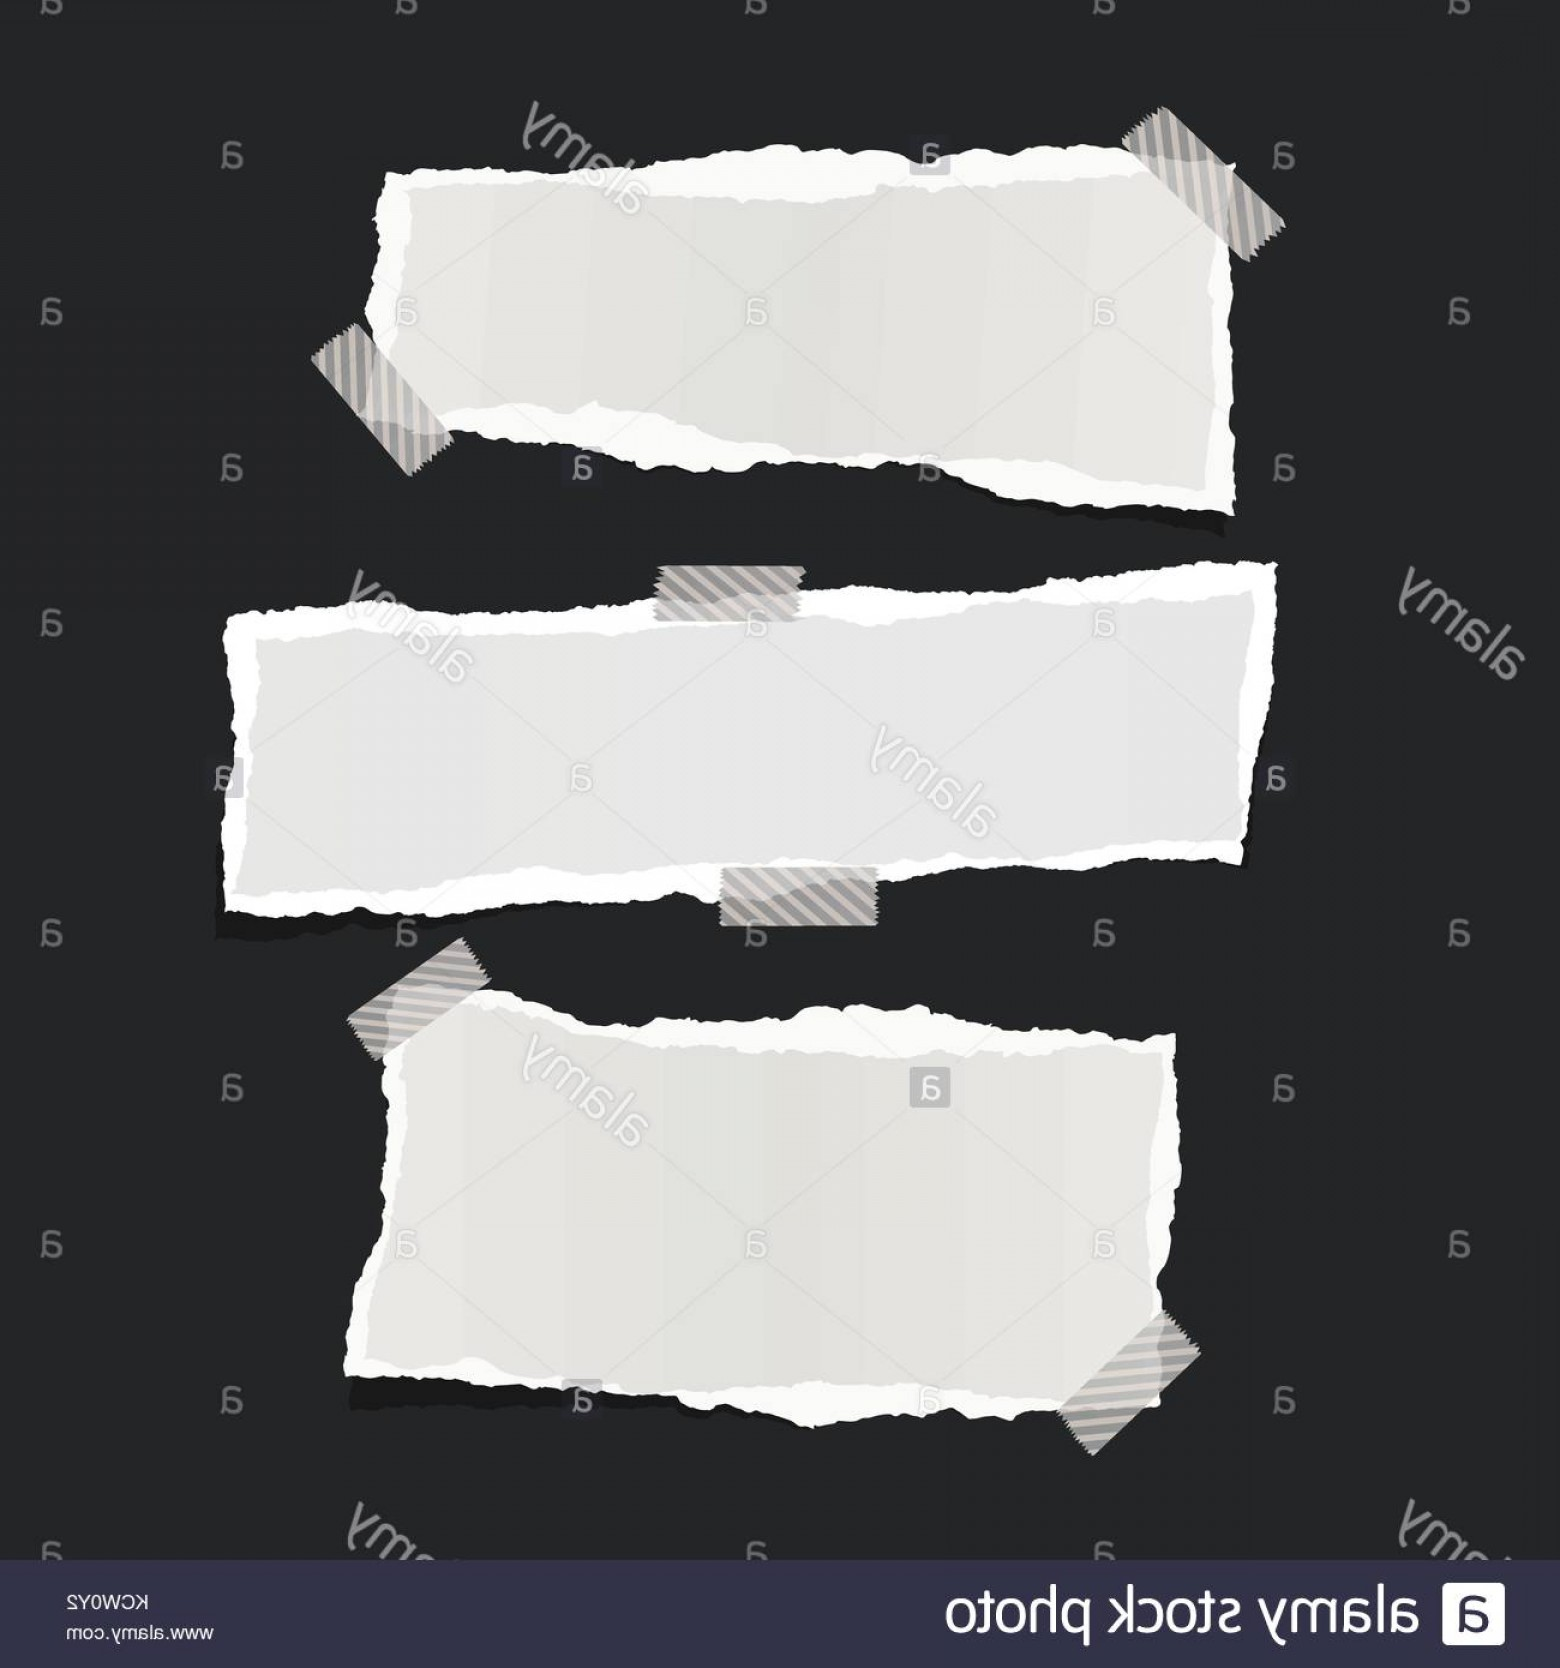 Ripped Black And White Vector: Stock Photo White Ripped Note Notebook Paper Stuck With Sticky Tape On Black Background